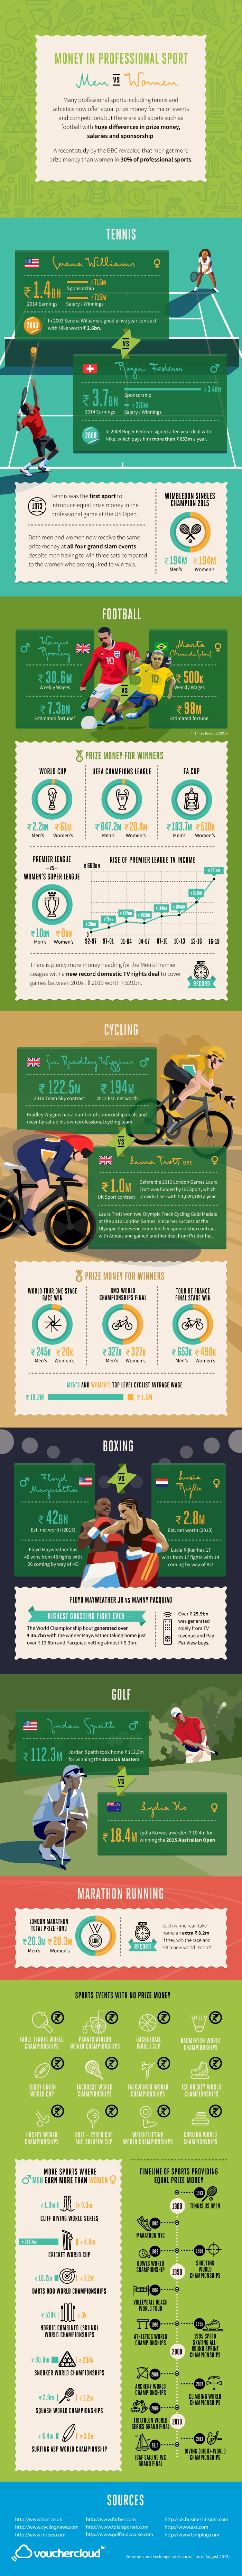 Money in Sport Infographic (Indian rupees)